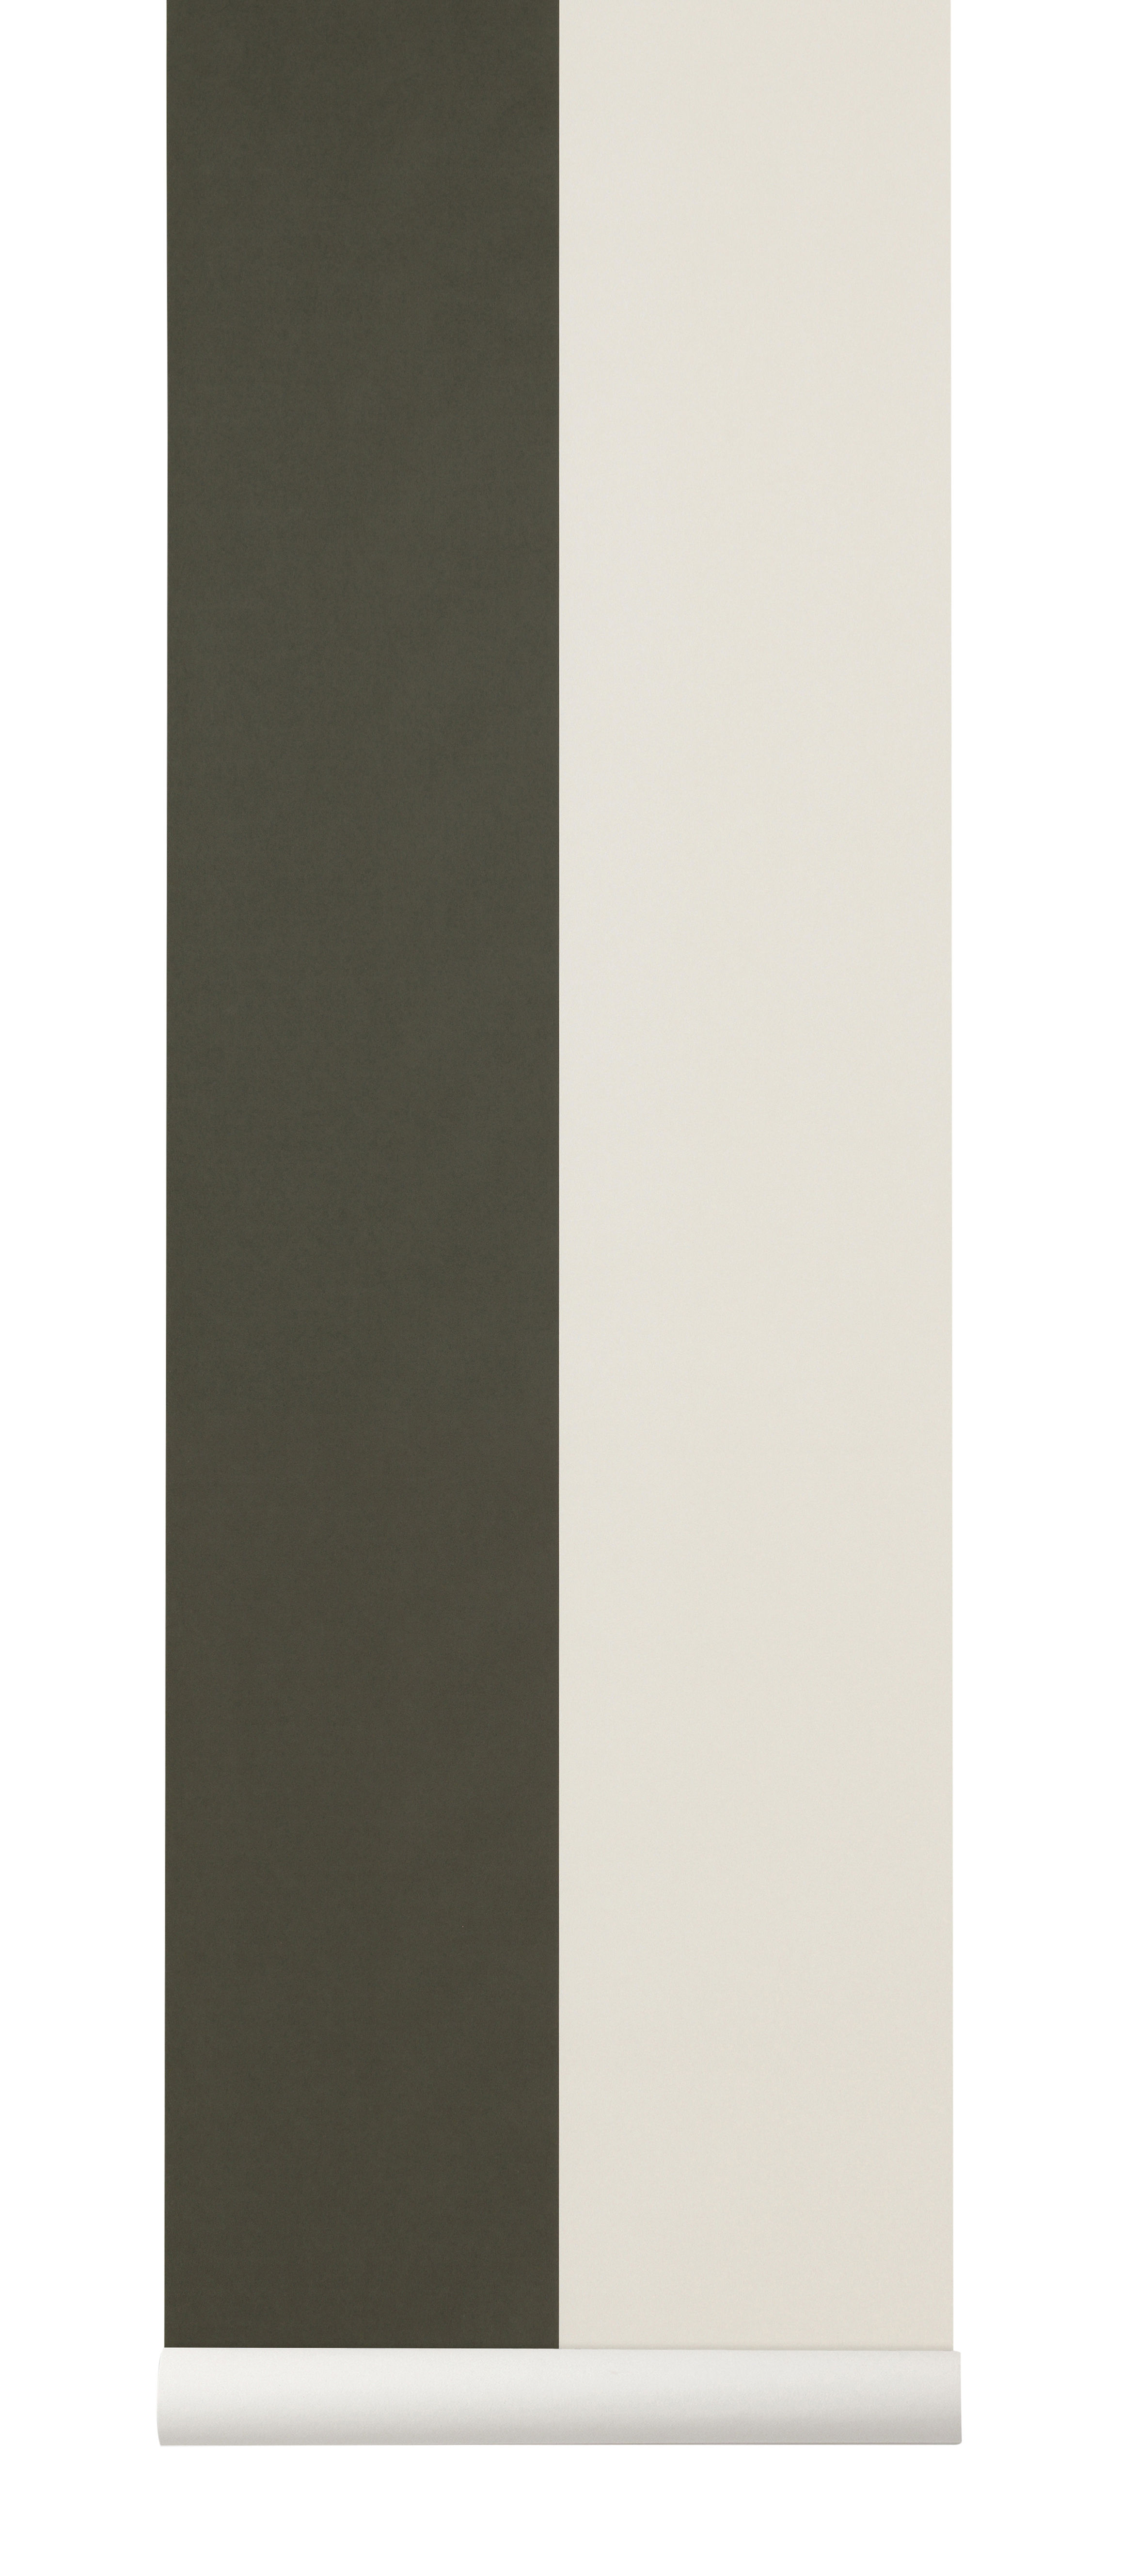 Decoration - Wallpaper & Wall Stickers - Thick Lines Wallpaper - / 1 roll - Width 53 cm by Ferm Living - Green & beige - Non-woven fabric